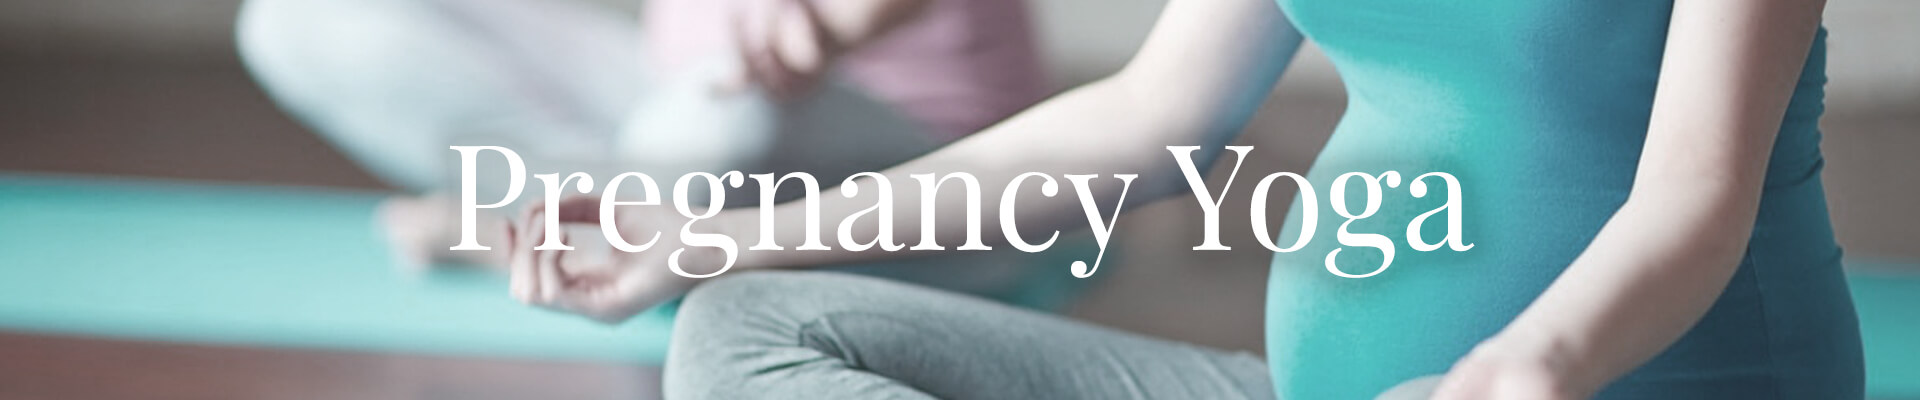 Pregnancy-Prenatal-Yoga-Buds-and-Blossom